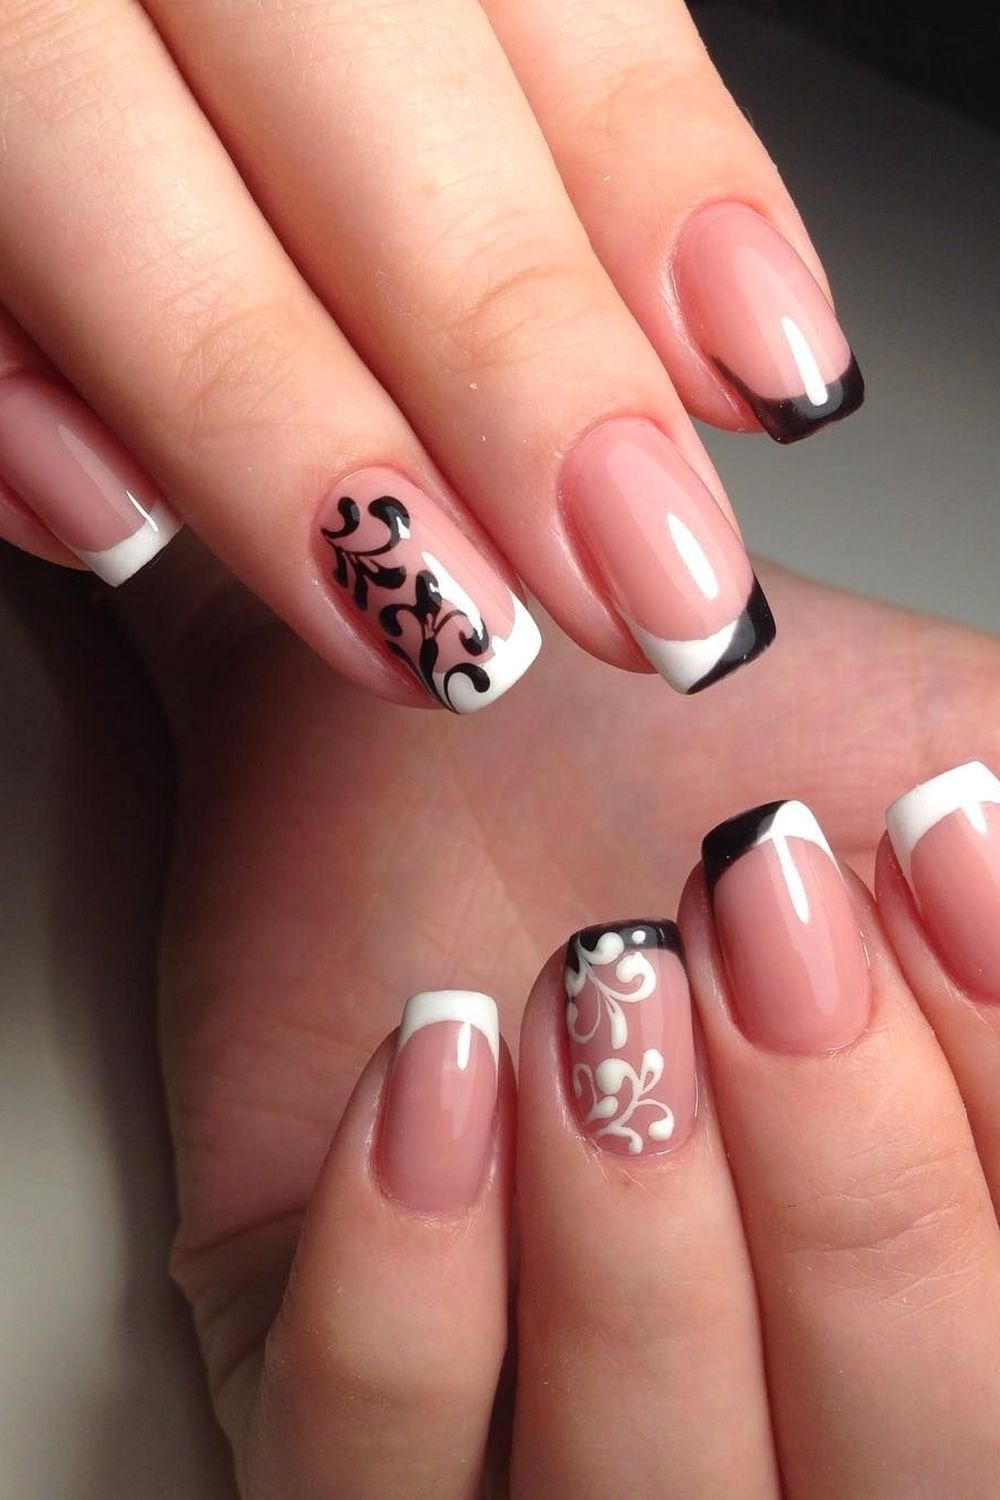 Pin By Dinoradamin On Pretty Nails In 2020 French Manicure